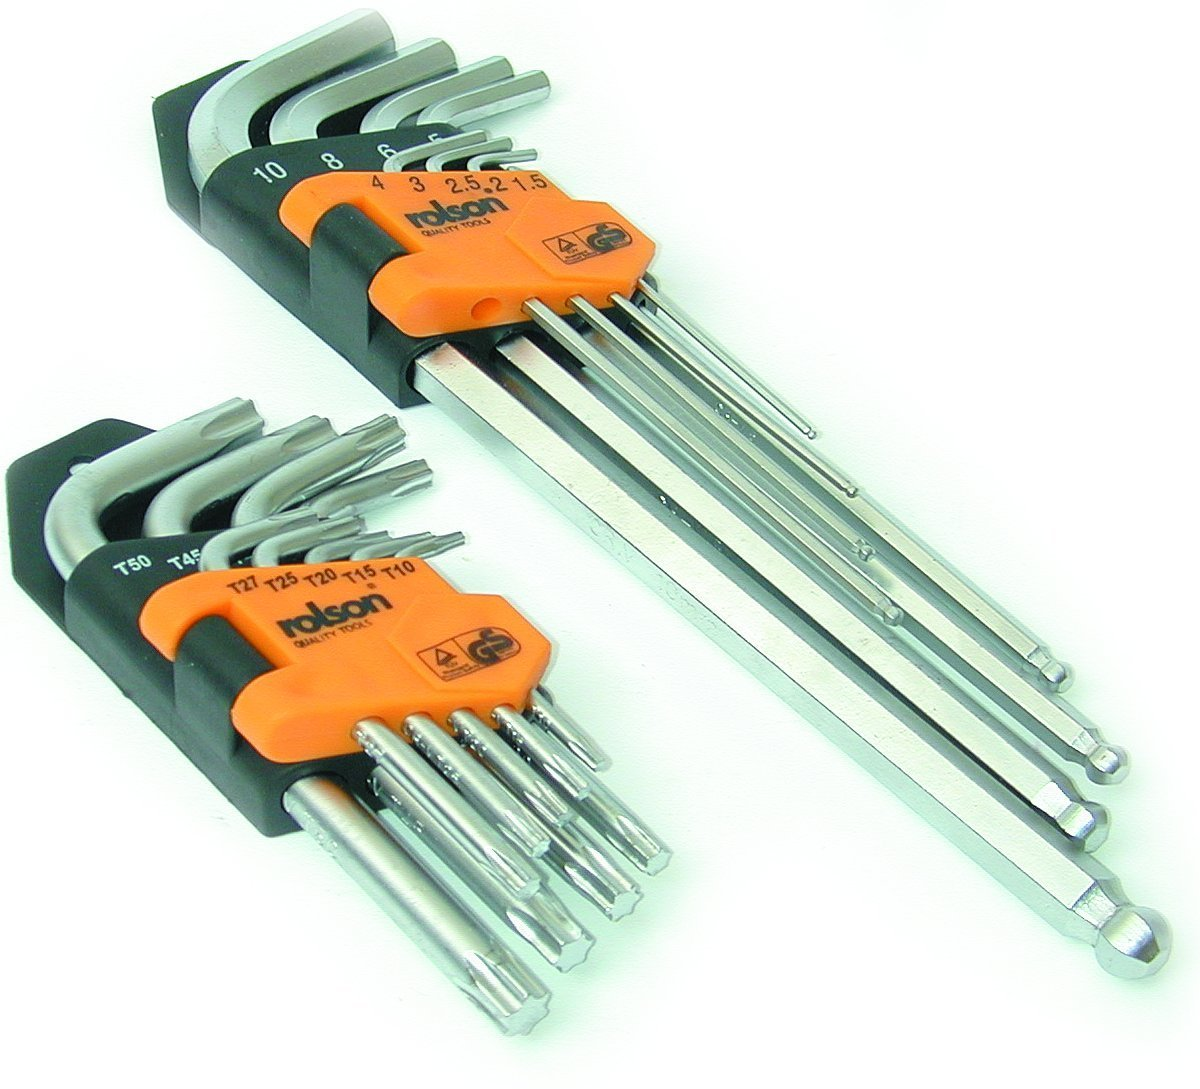 18 Pieces Rolson 40389 Ball Ended Hex Key Set